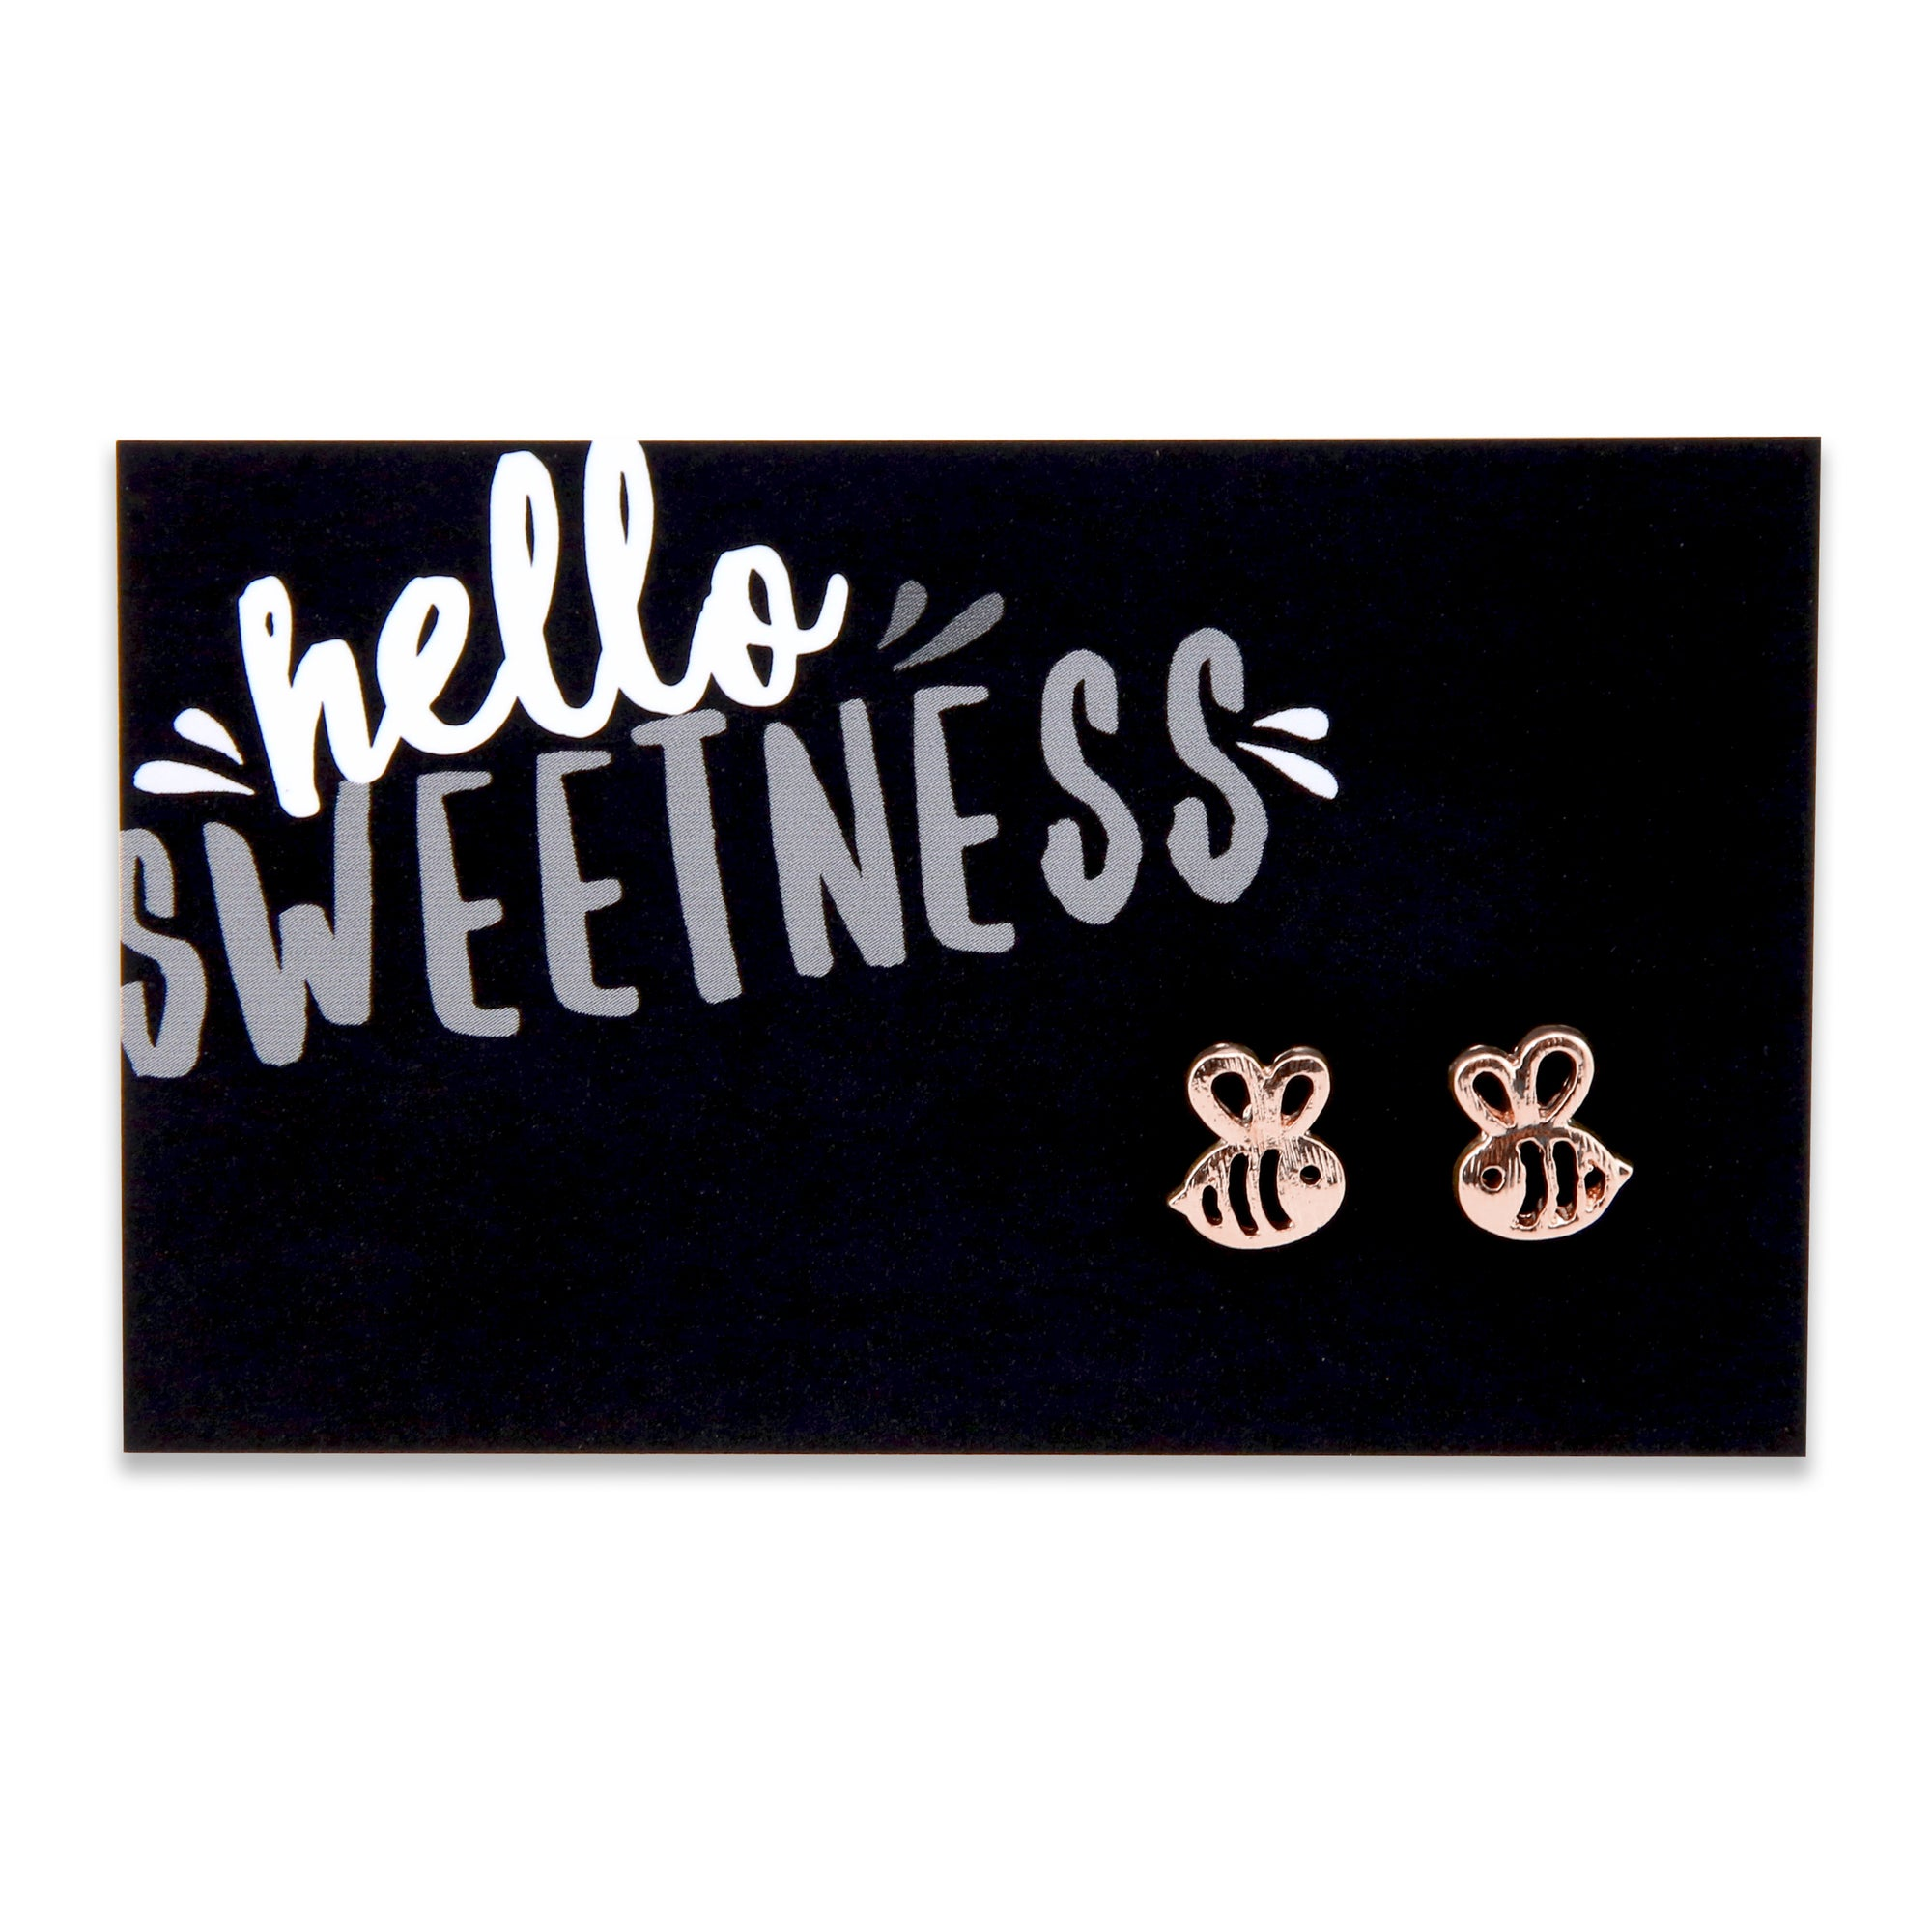 Hello Sweetness! Bumble Bee Earring Studs - Rose Gold (9416)